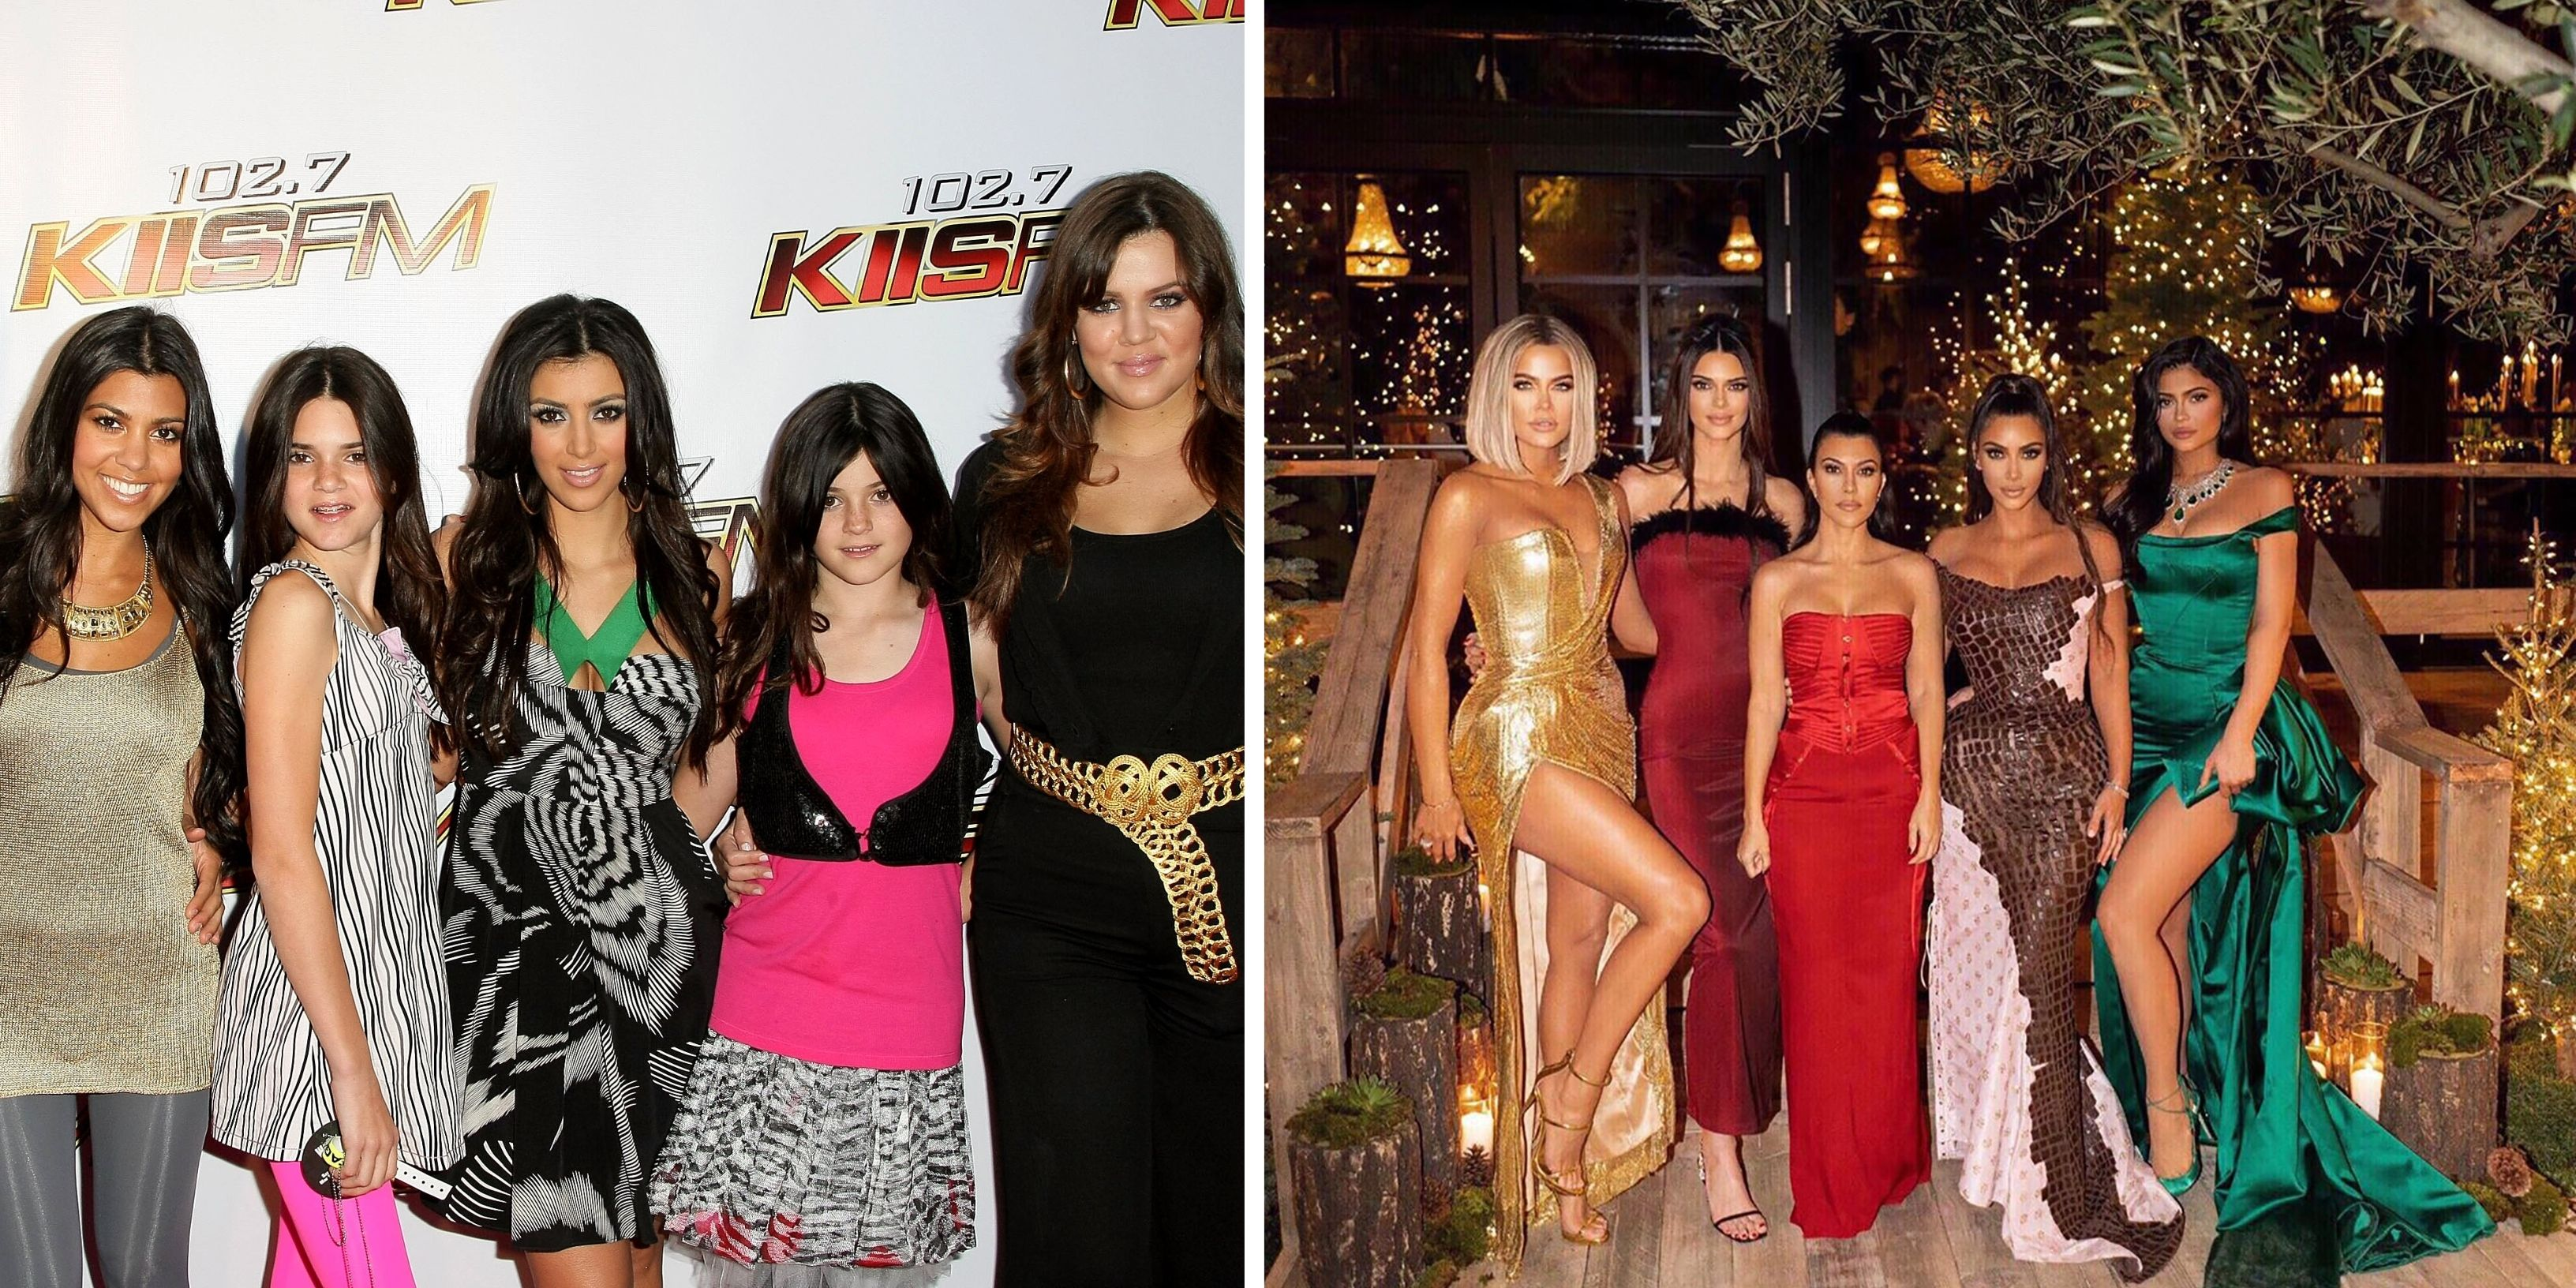 These Pics Show Just How Much The Kardashian-Jenners Clan's Style Has Evolved